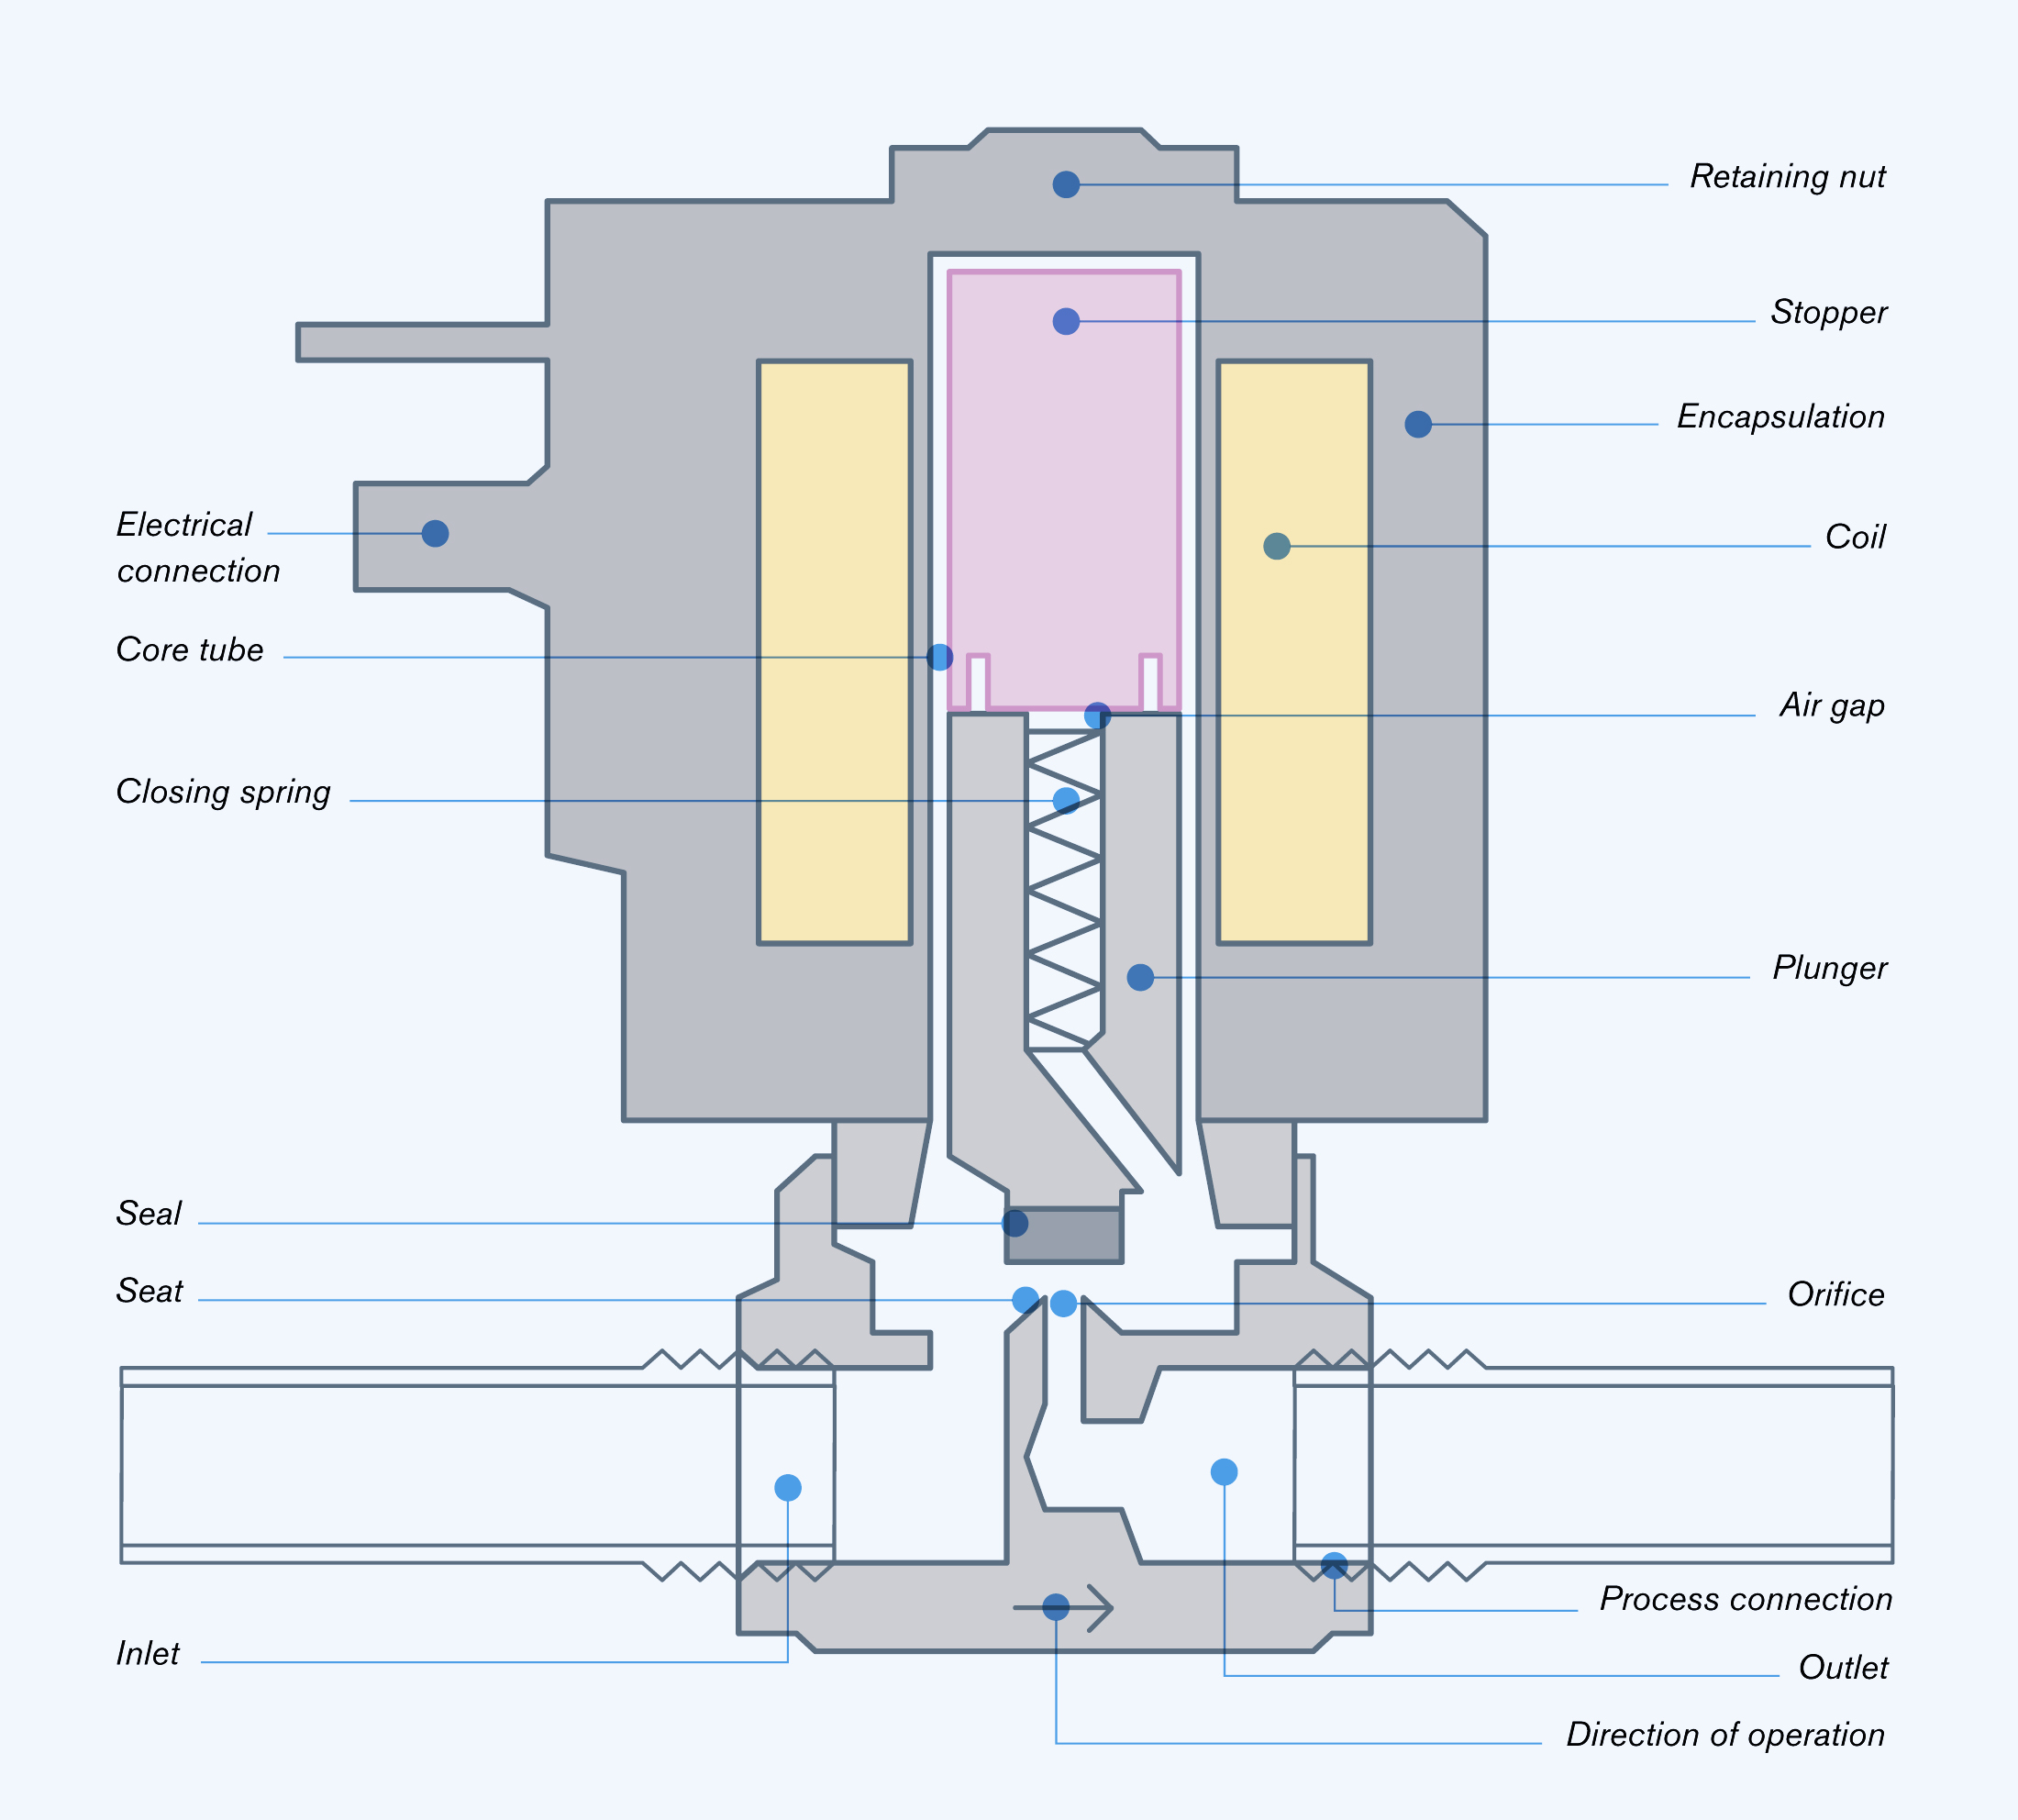 Mac valve wiring diagram 6500 1950 gas stove wiring diagram beautiful asco solenoid valve wiring diagram gallery the best how a solenoid valve works asco solenoid valve wiring diagram mac valve wiring diagram 6500 cheapraybanclubmaster Choice Image